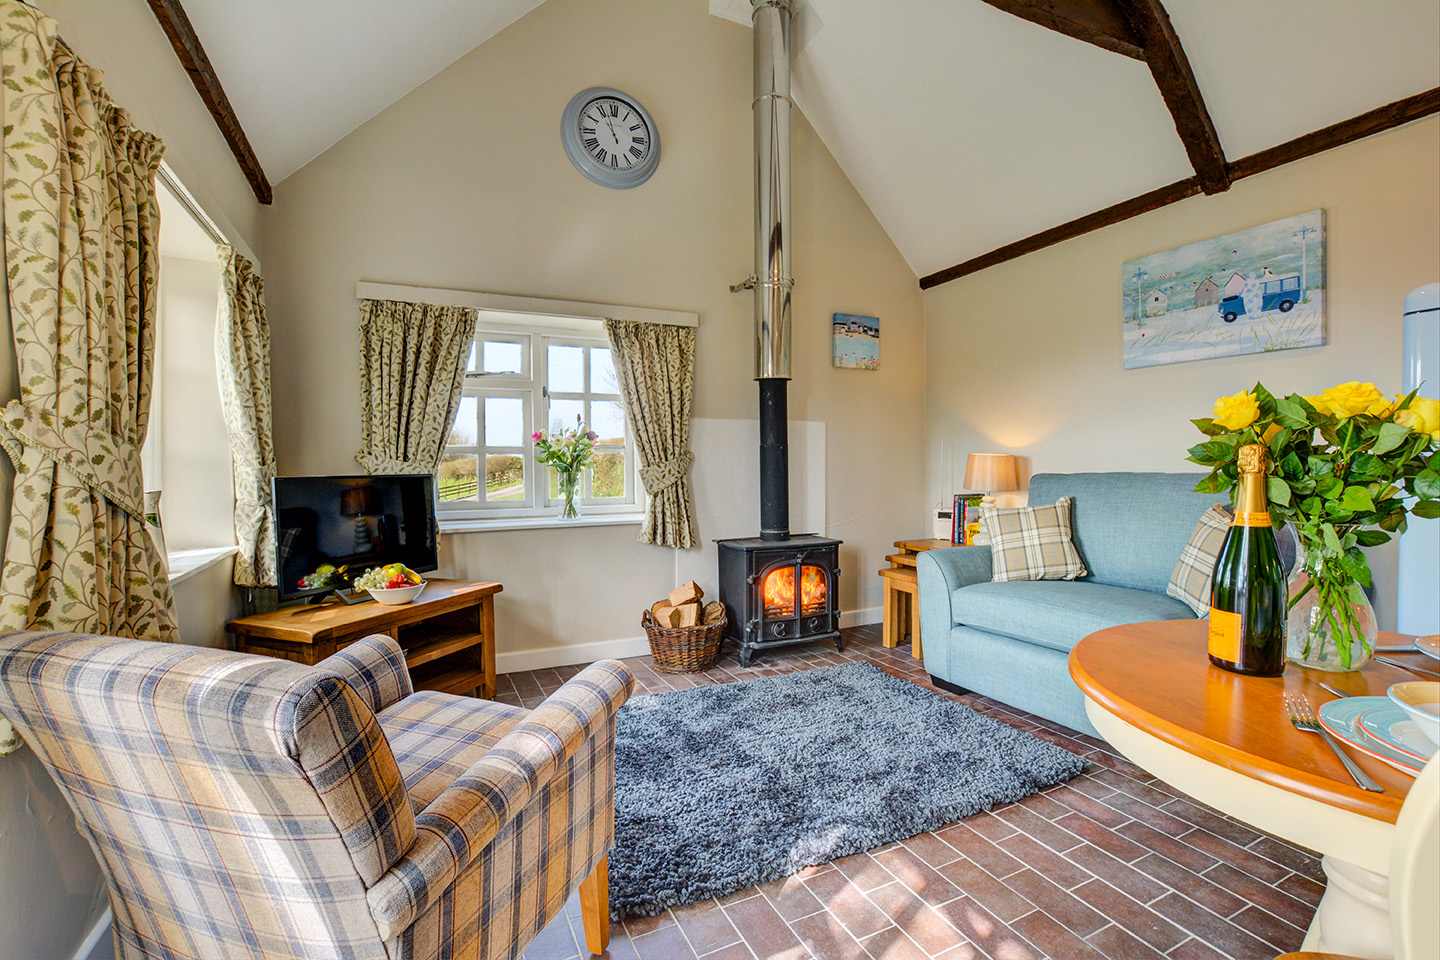 The lounge at Jingles luxury self catering holiday cottage at Penrose Burden in North Cornwall near Bodmin Moor02.jpg